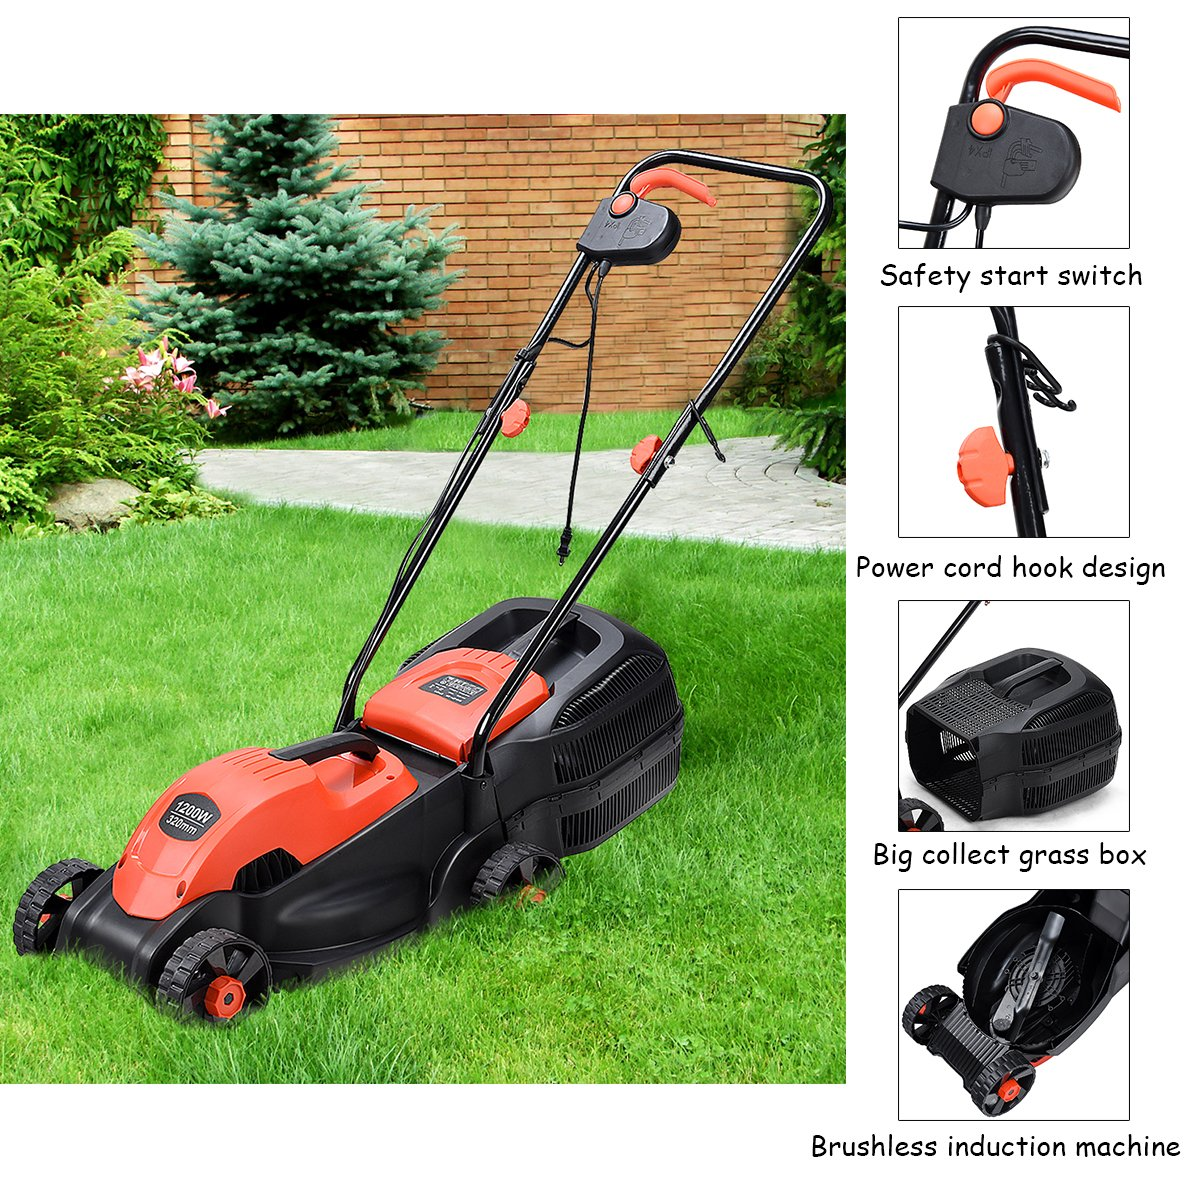 Goplus 14-Inch 12 Amp Lawn Mower w/Grass Bag Folding Handle Electric Push Lawn Corded Mower (Red)